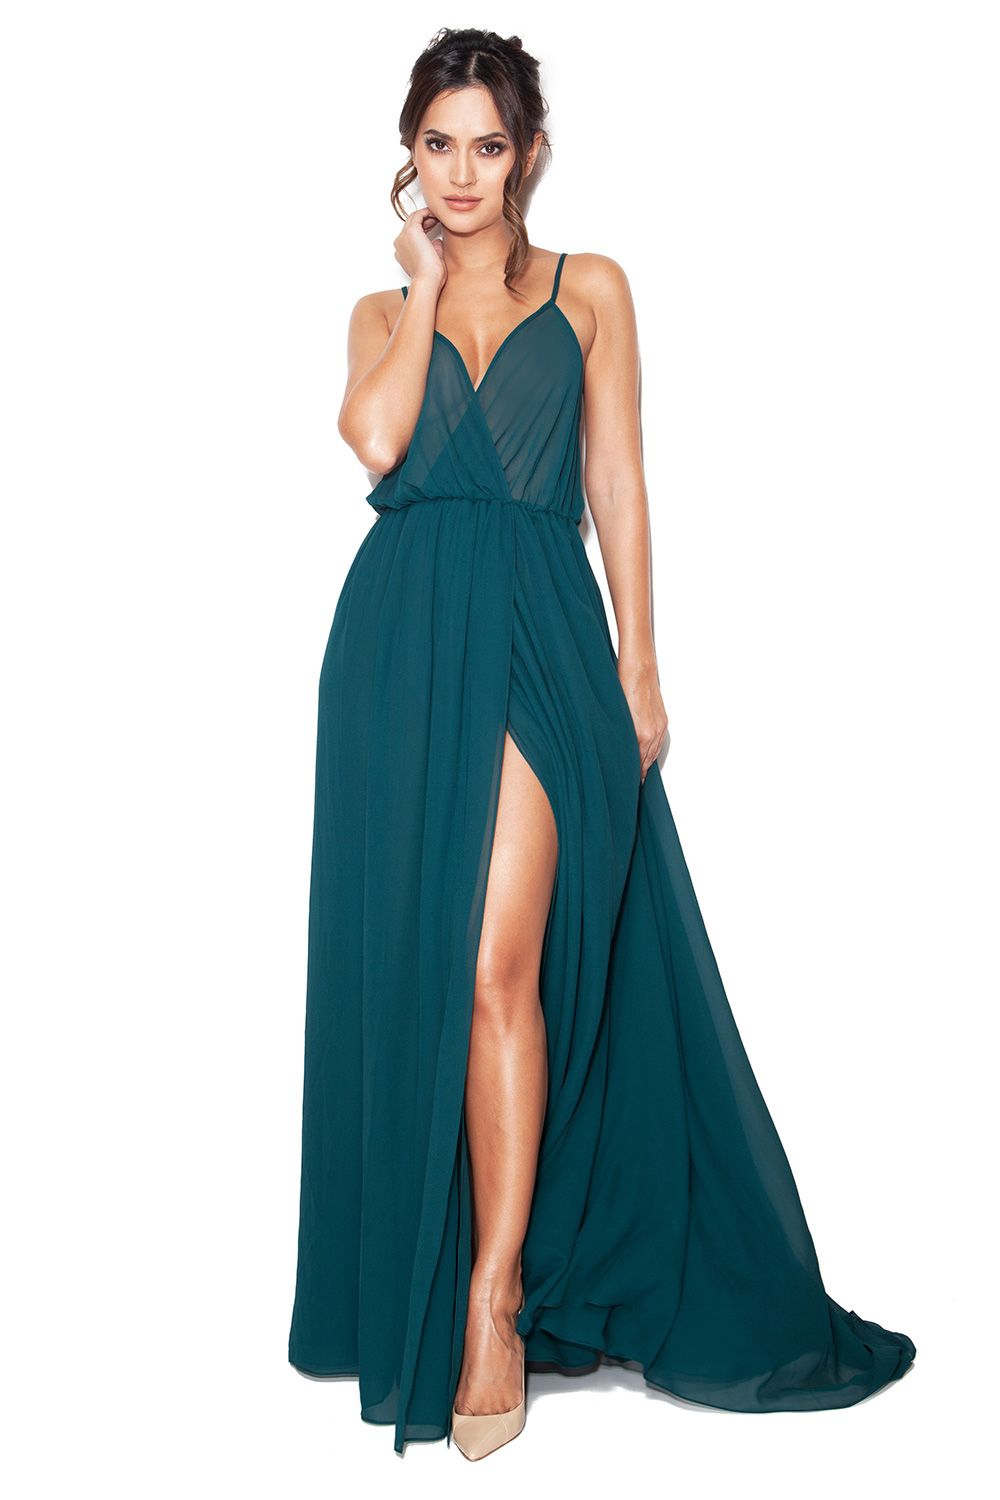 green-chiffon-maxi-dress | Chiffon Maxi Dress | Pinterest | Sheer ...